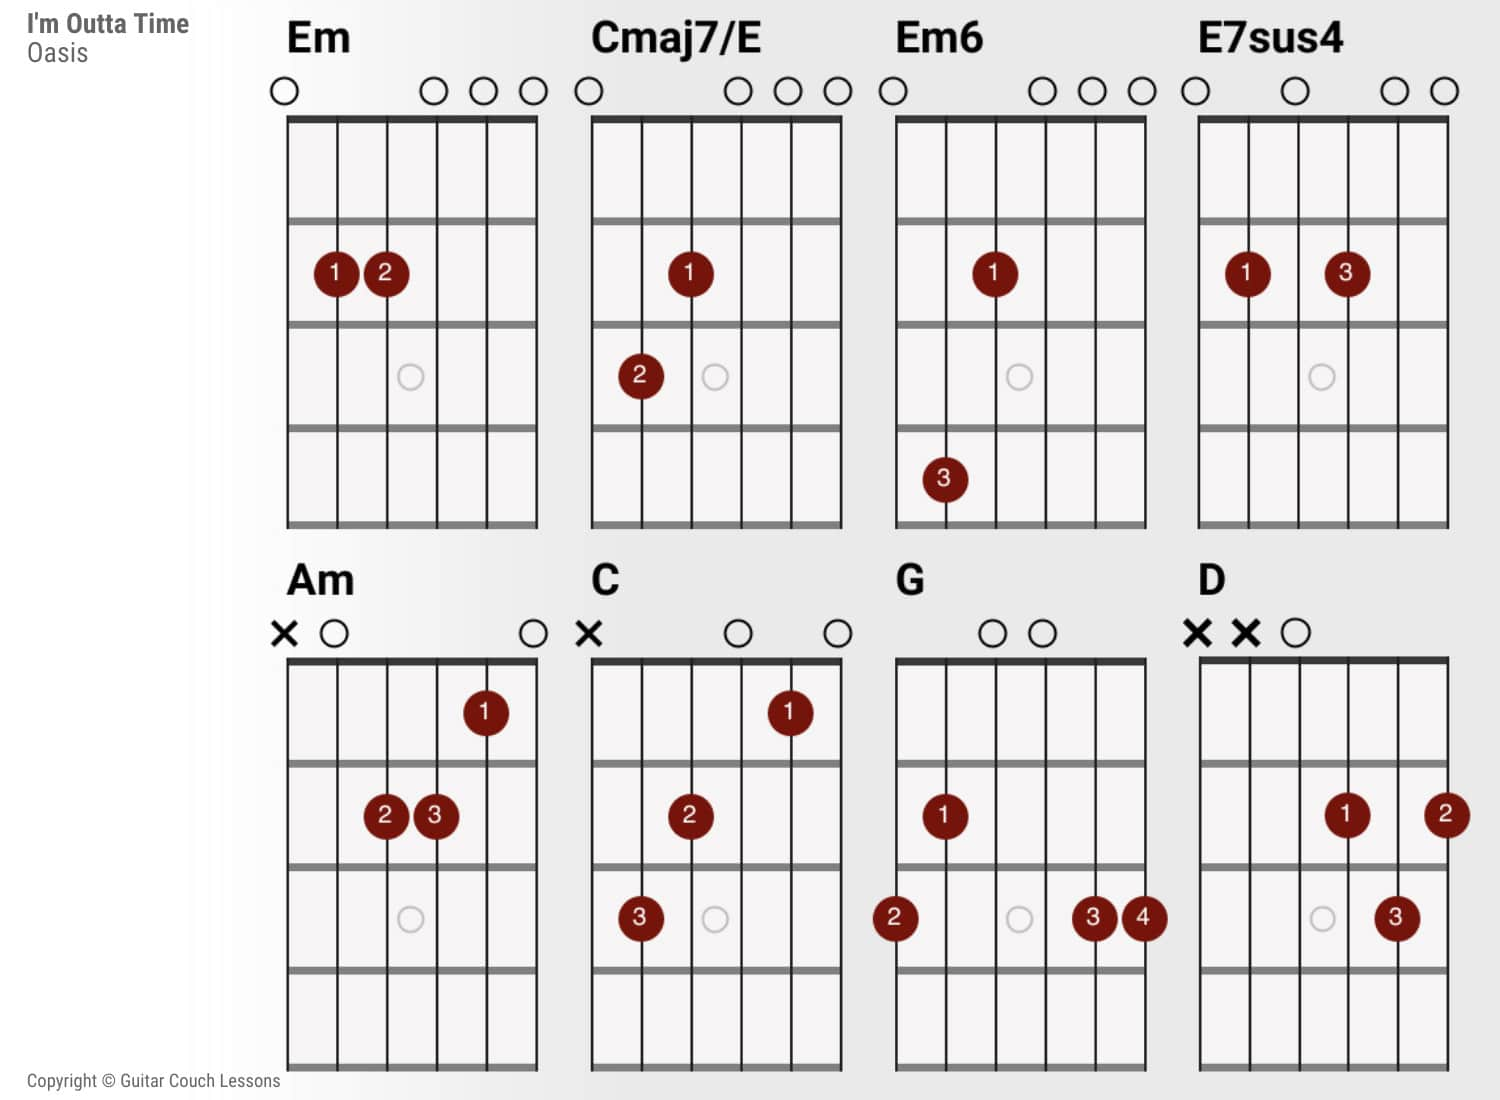 How To Play I'm Outta Time   Oasis   Guitar Couch Lessons